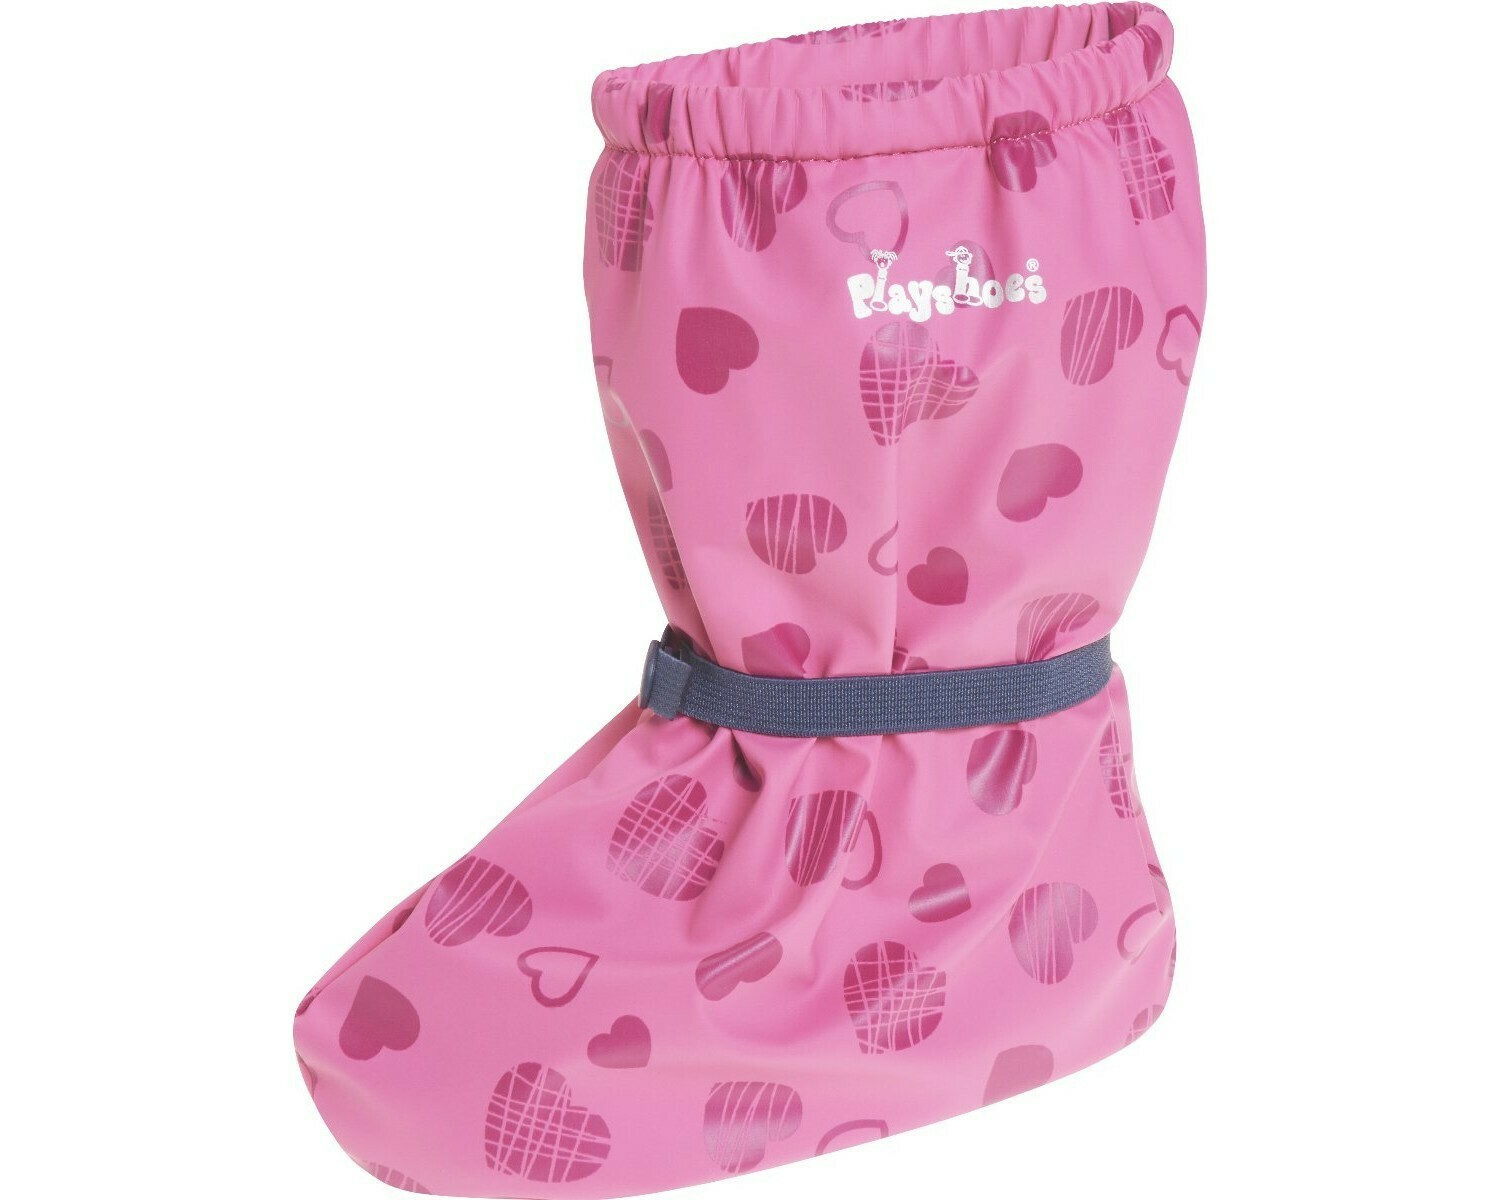 Playshoes covers with fleece hearts